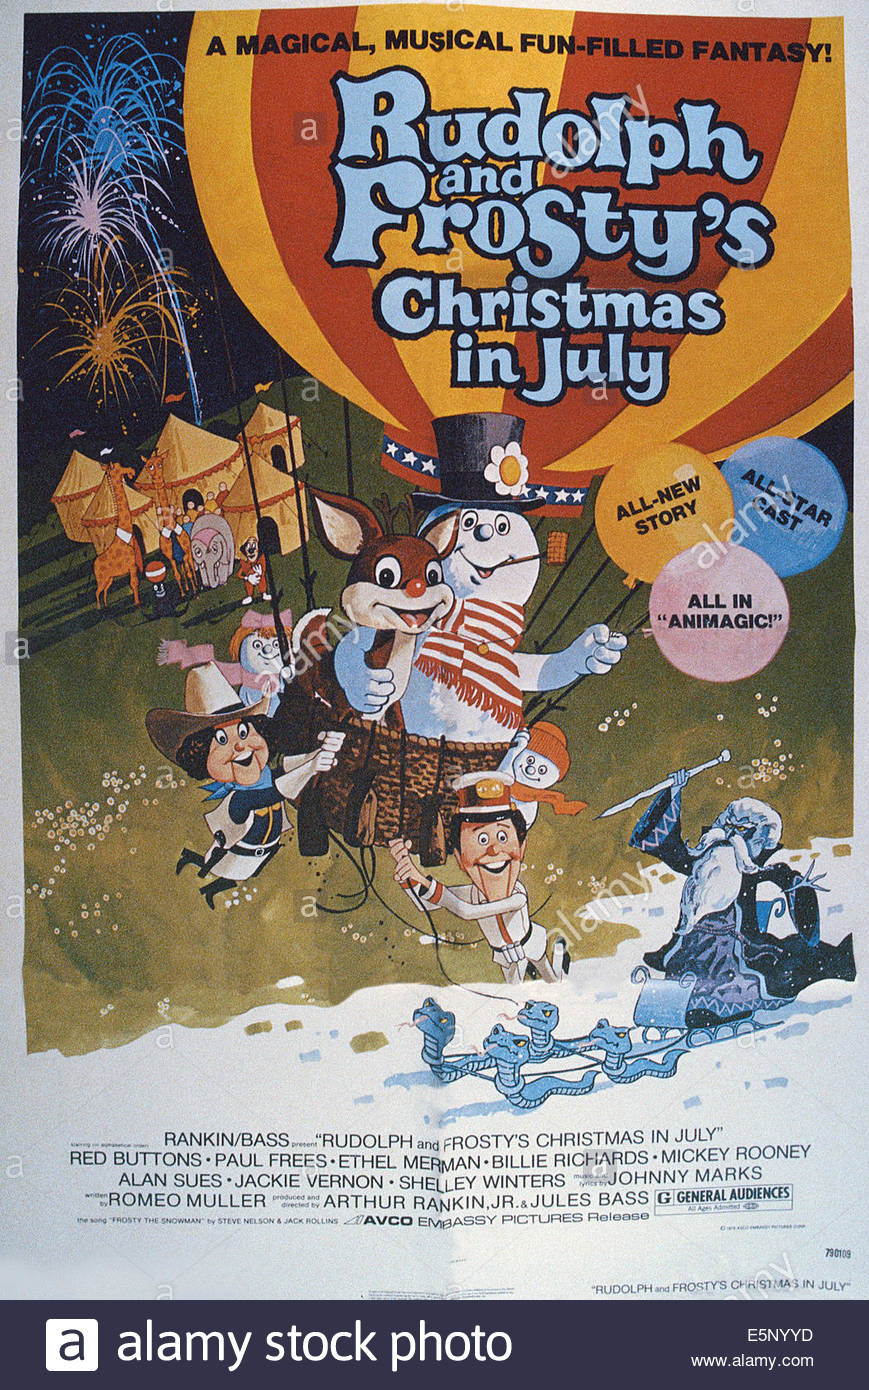 Rudolph And Frostys Christmas In July Dvd.Rudolph And Frosty S Christmas In July Moviepedia Fandom